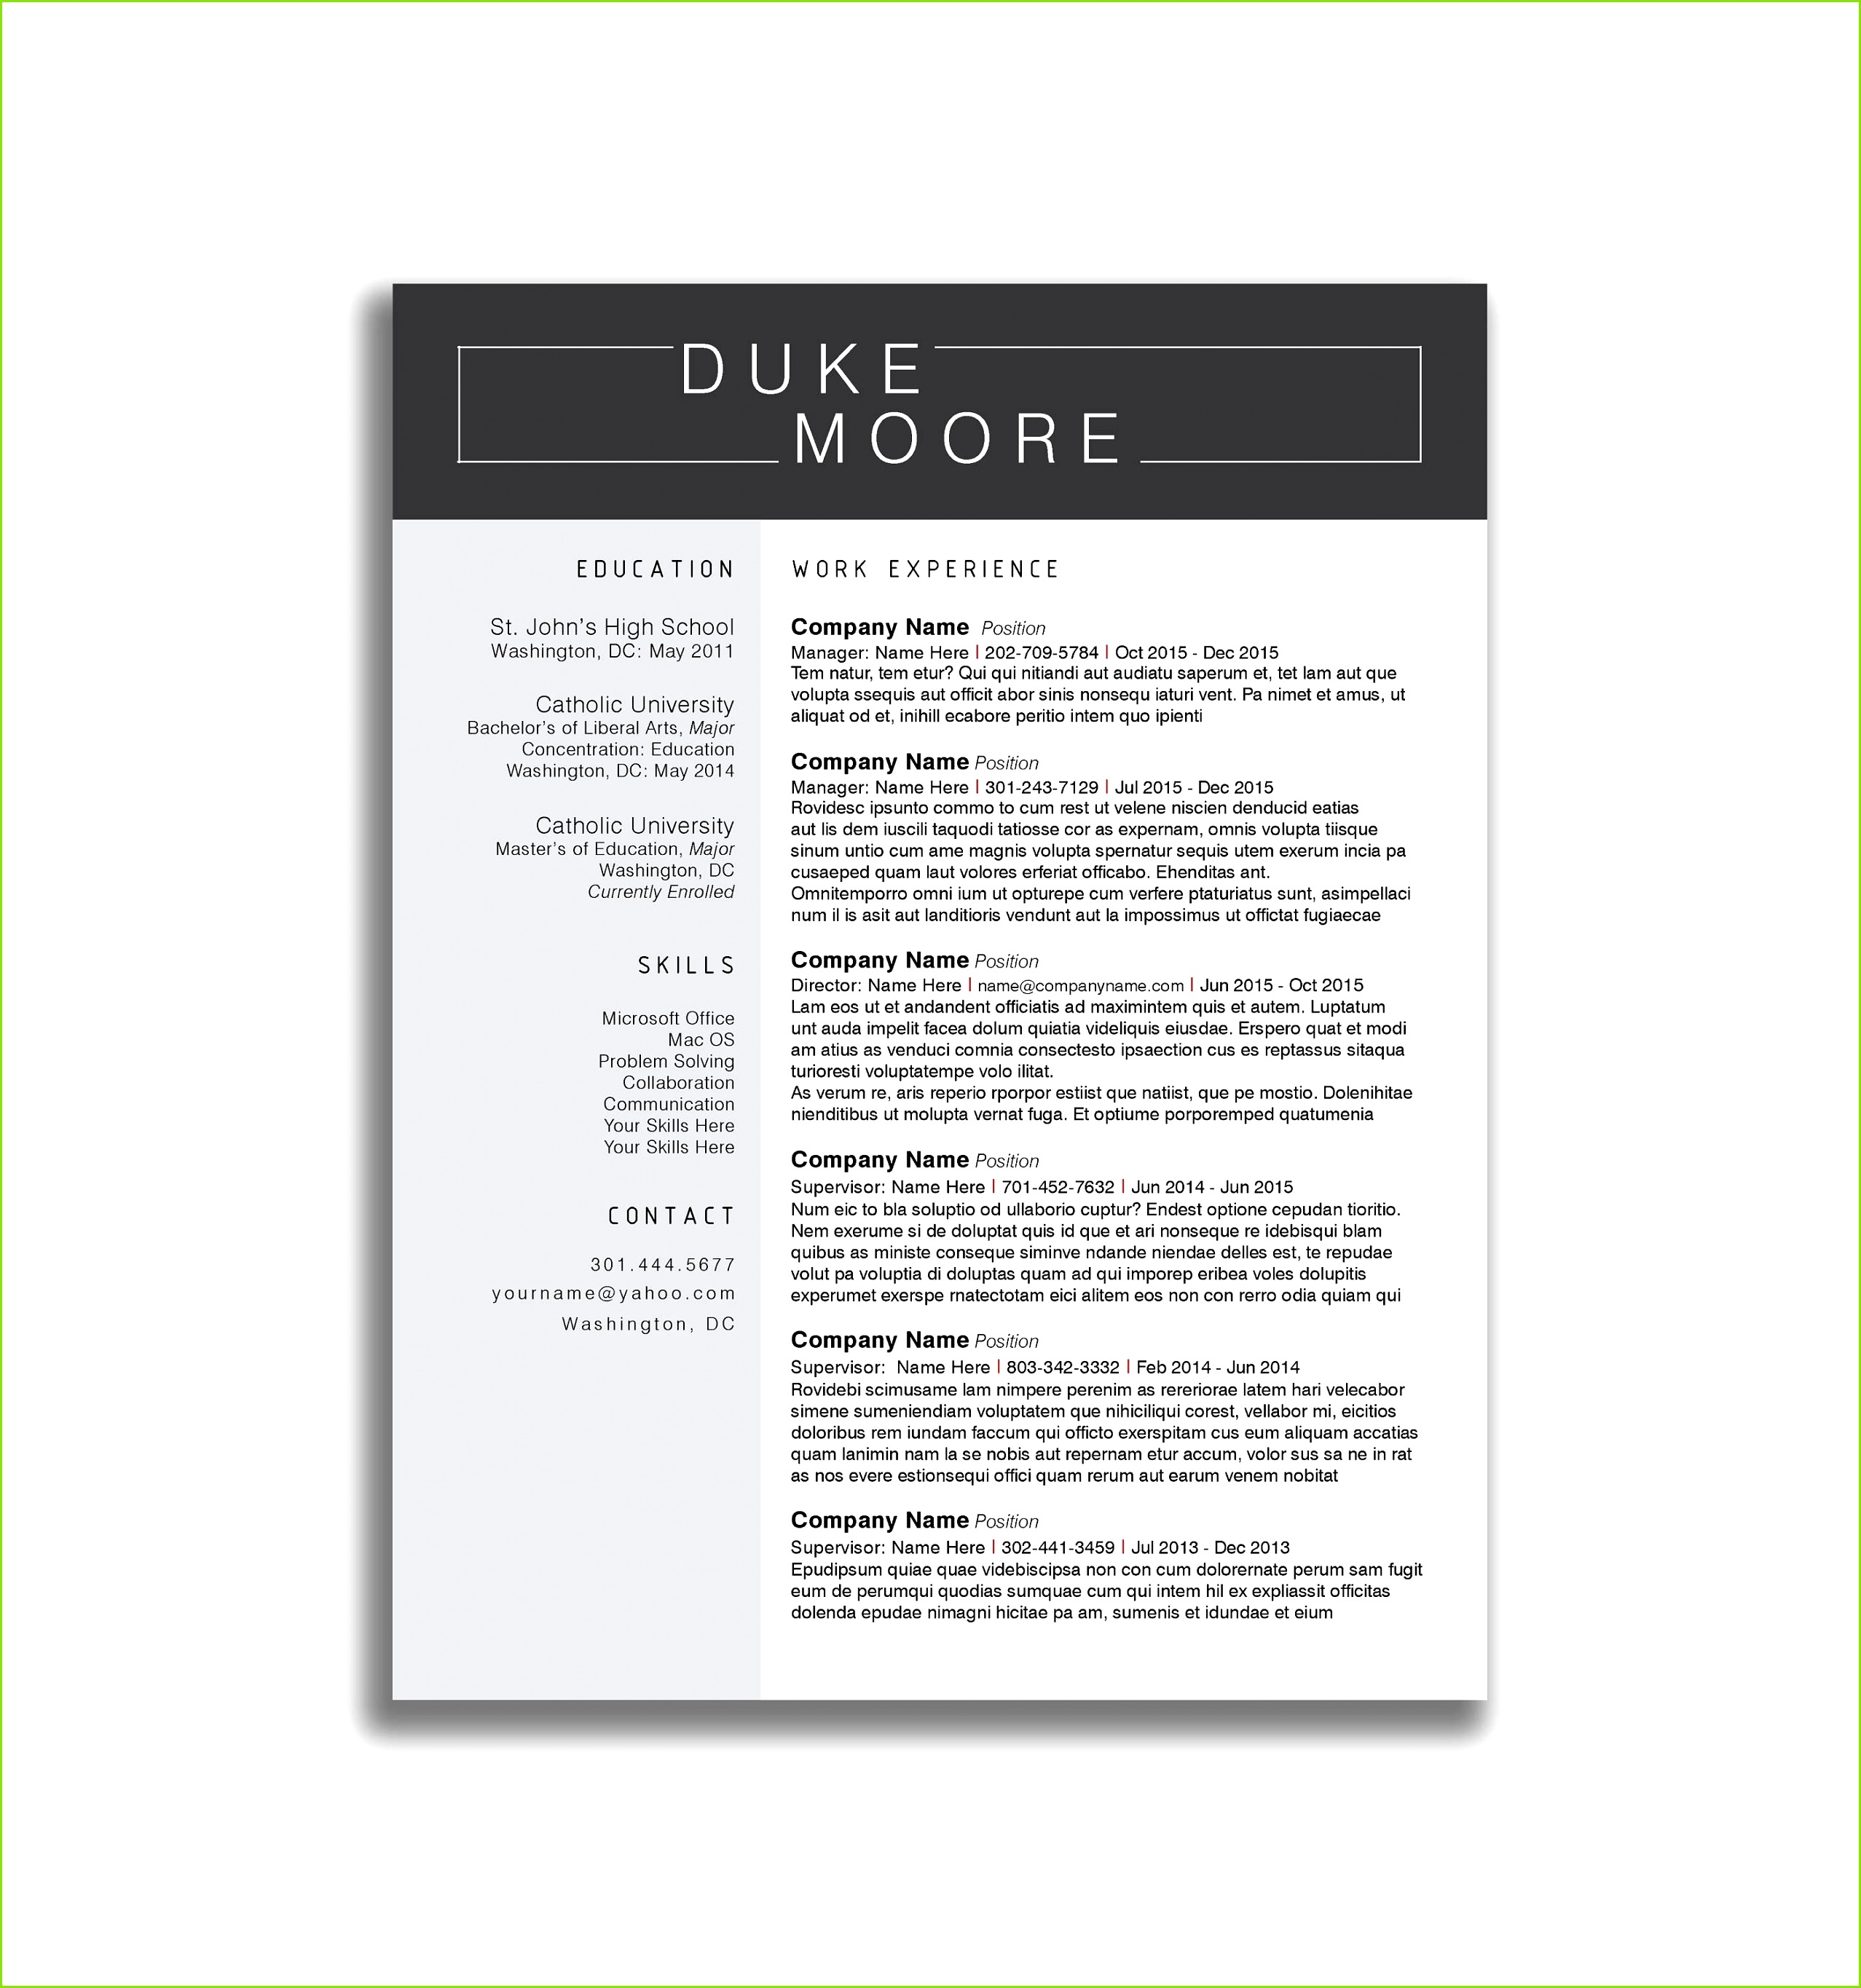 Download Resume Templates Unique Cool Resume Templates for Mac Myacereporter Myacereporter Download Resume Templates Luxury